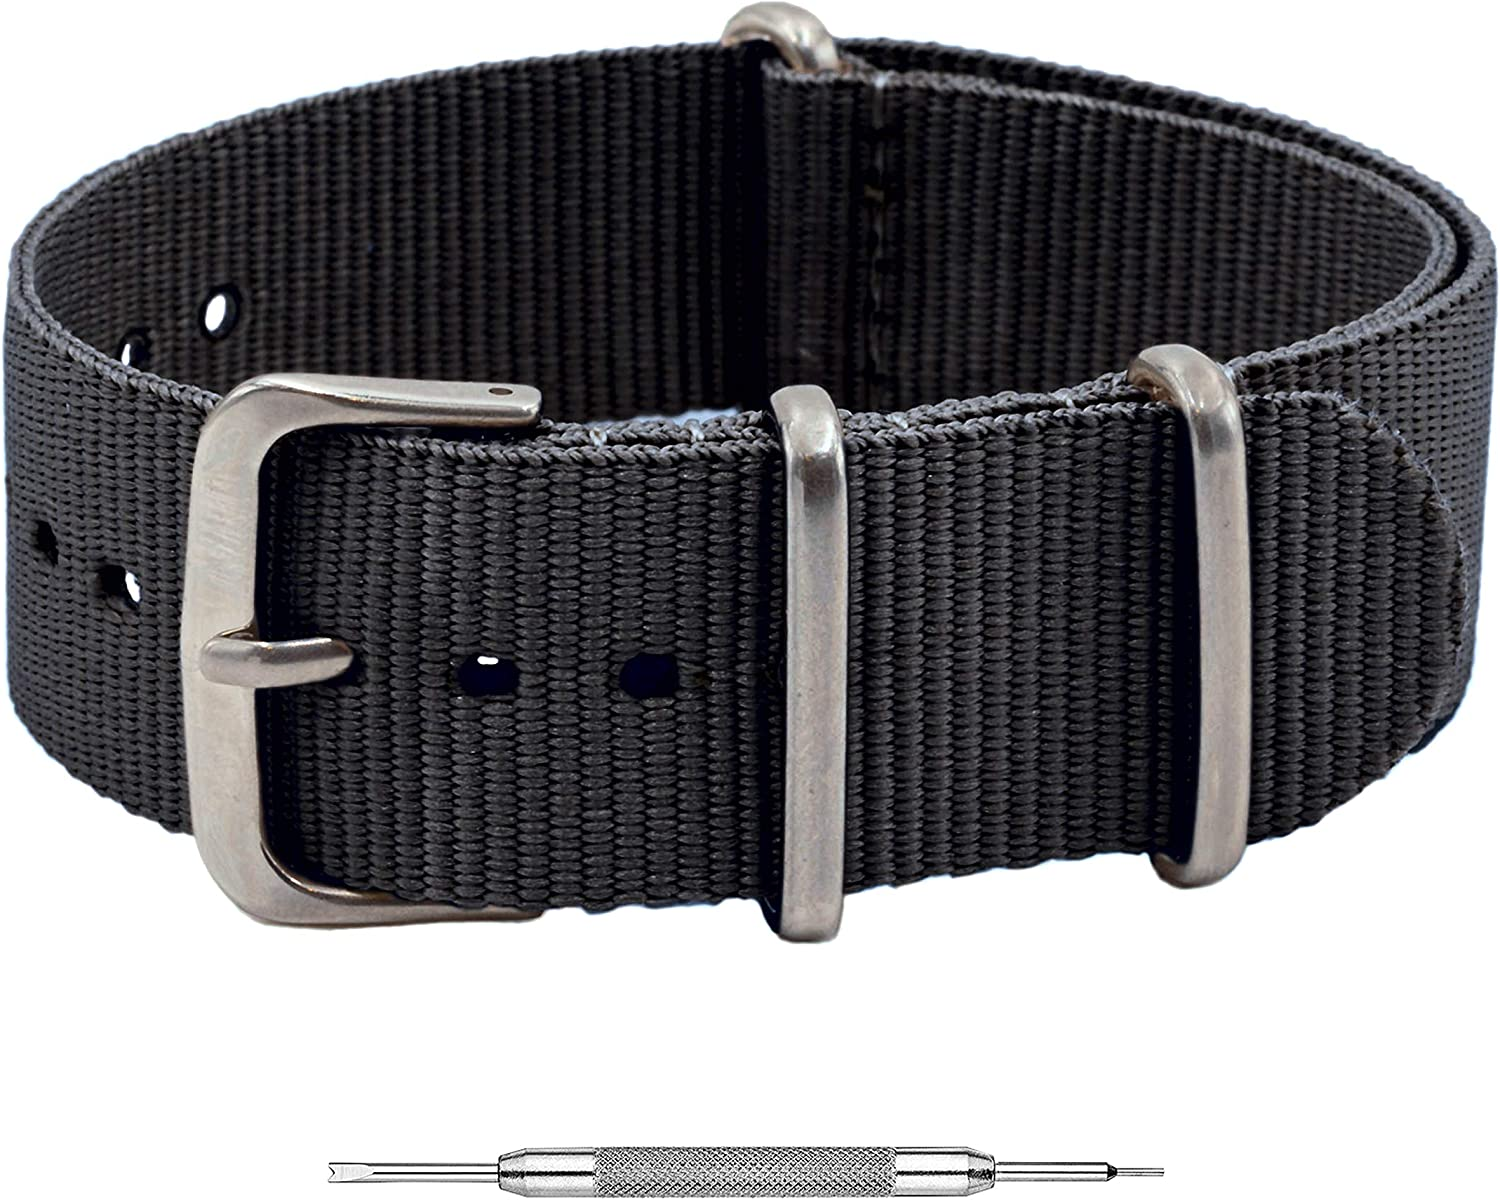 Benchmark Basics Nylon Watch Band - Waterproof Ballistic Nylon One-Piece Military Watch Straps for Men & Women - Choice of Color & Width - 18mm, 20mm, 22mm or 24mm